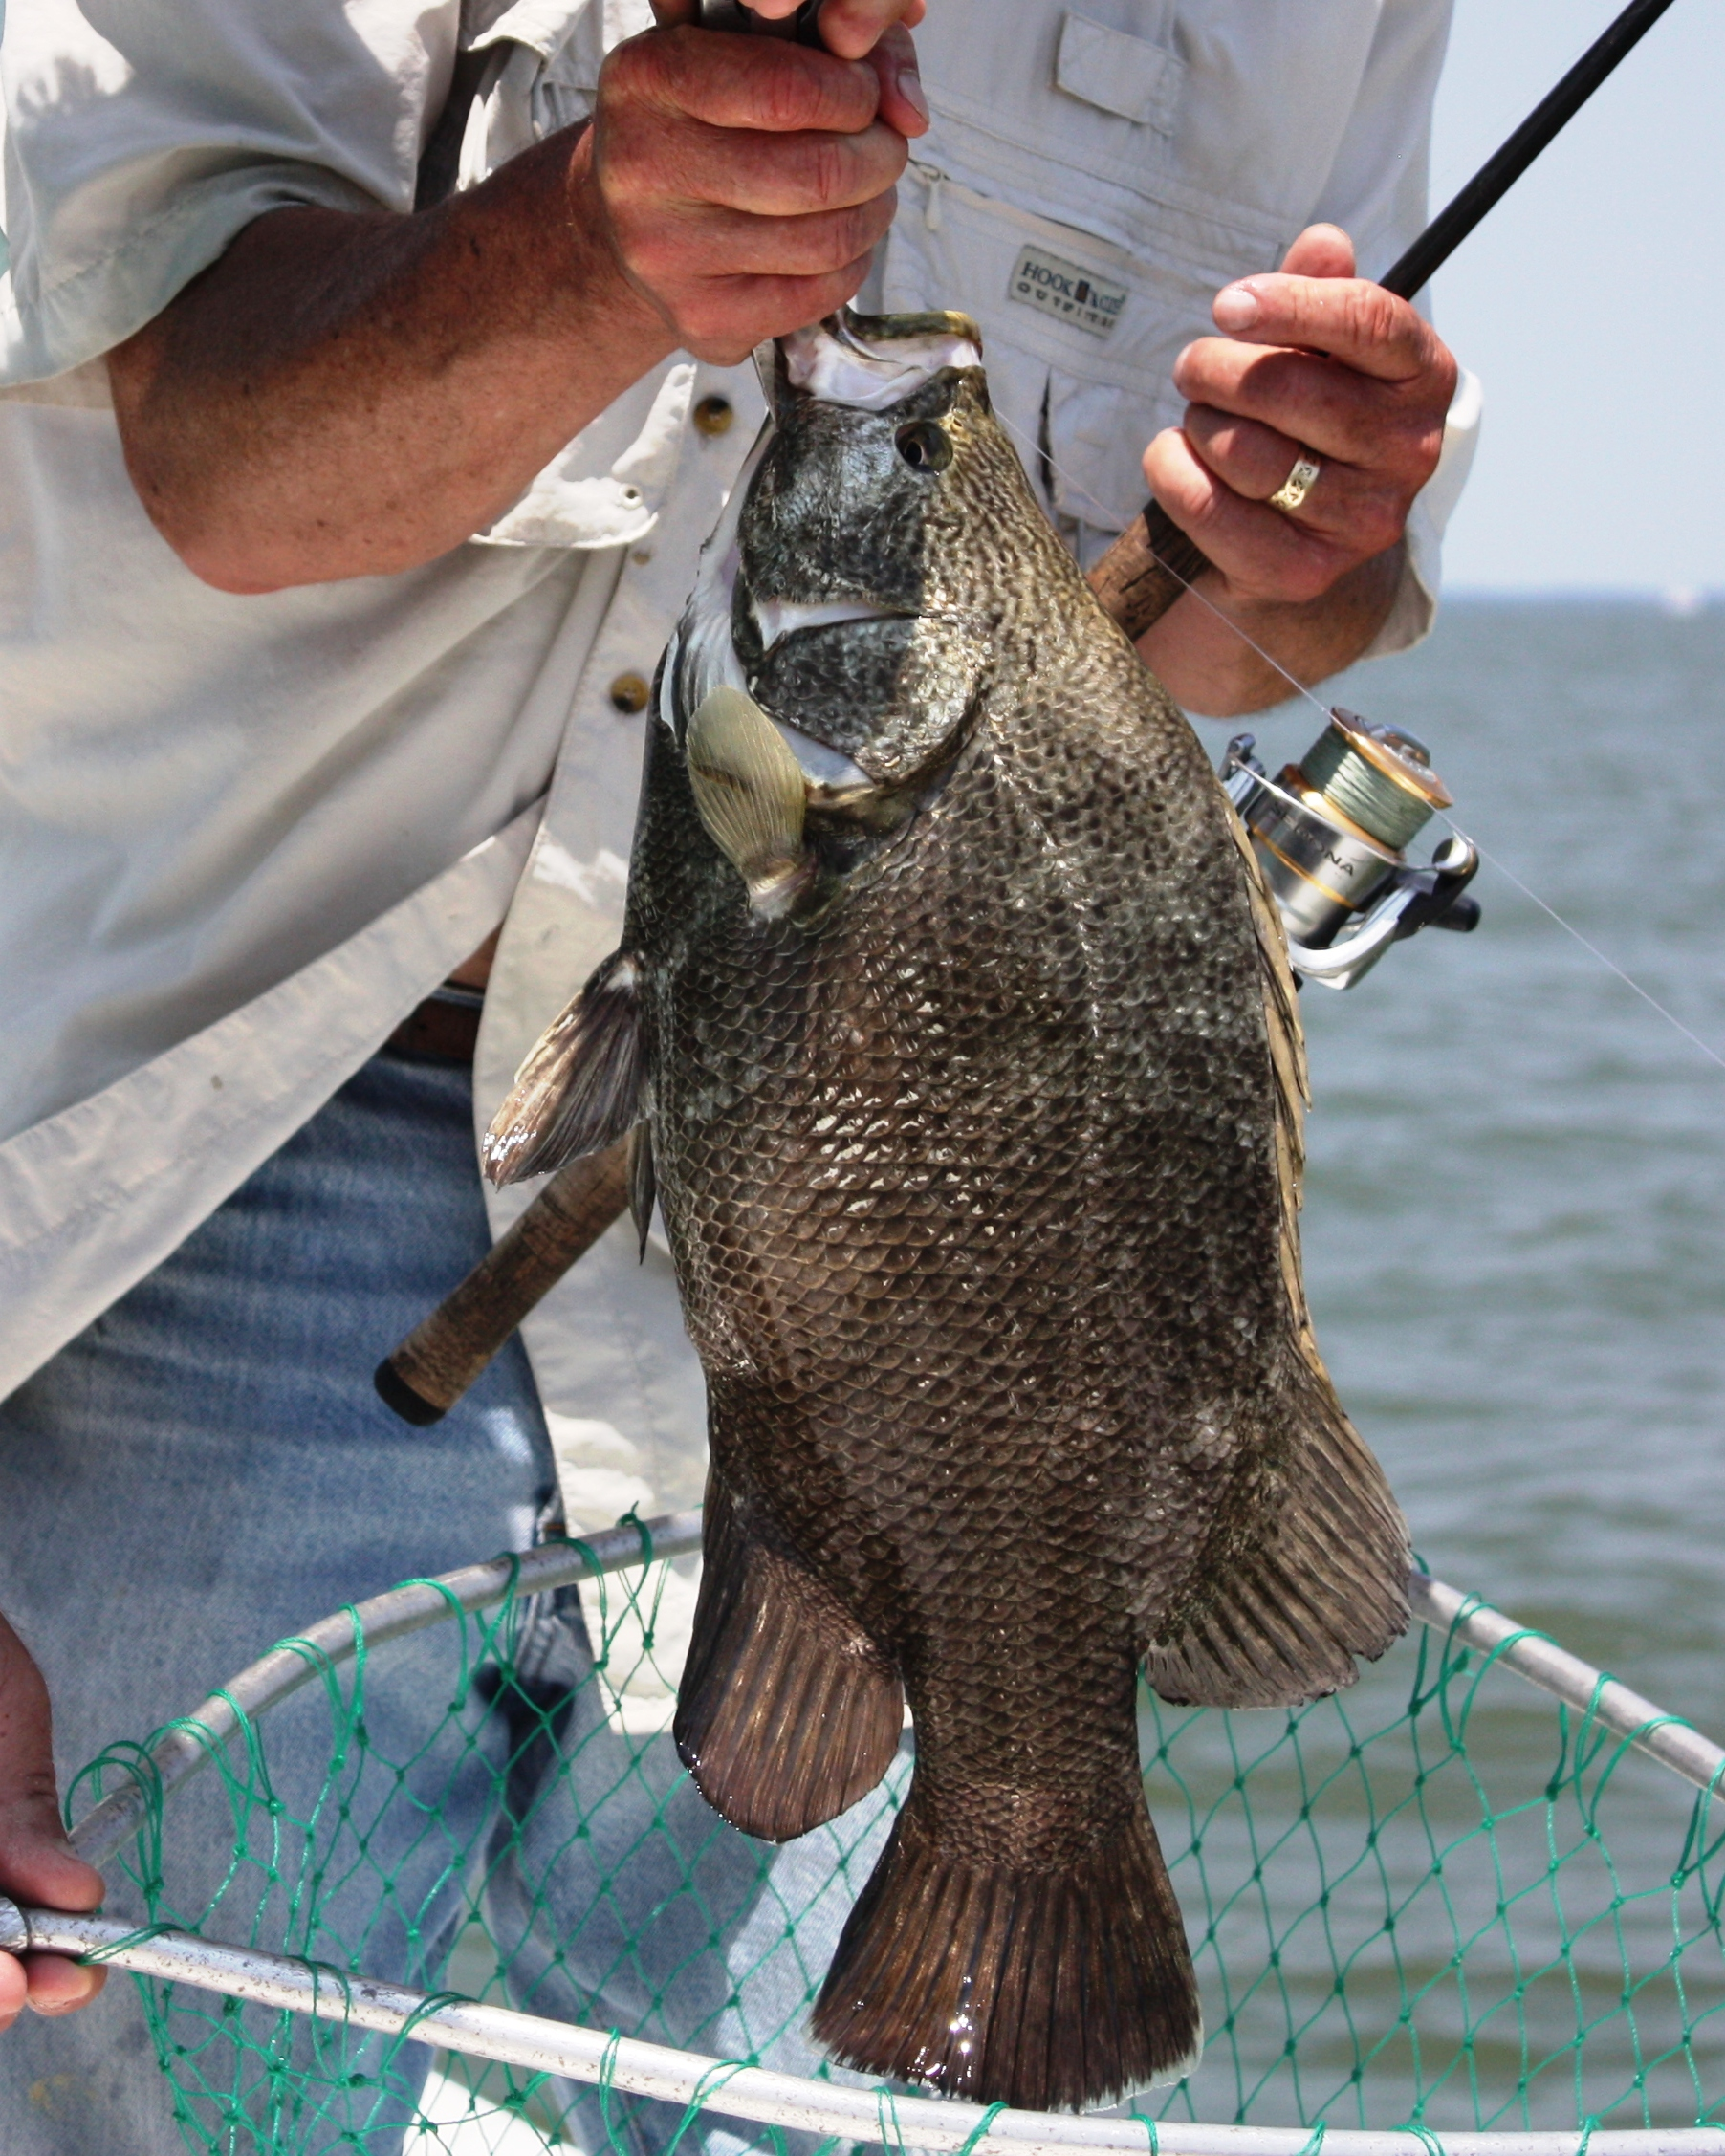 When fall tripletail fishing, I have my standard tripletail rig ready.  I use a medium action spinning or casting rig with 20 lb. line and a popping cork fixed a couple of feet above a hook with a live shrimp.